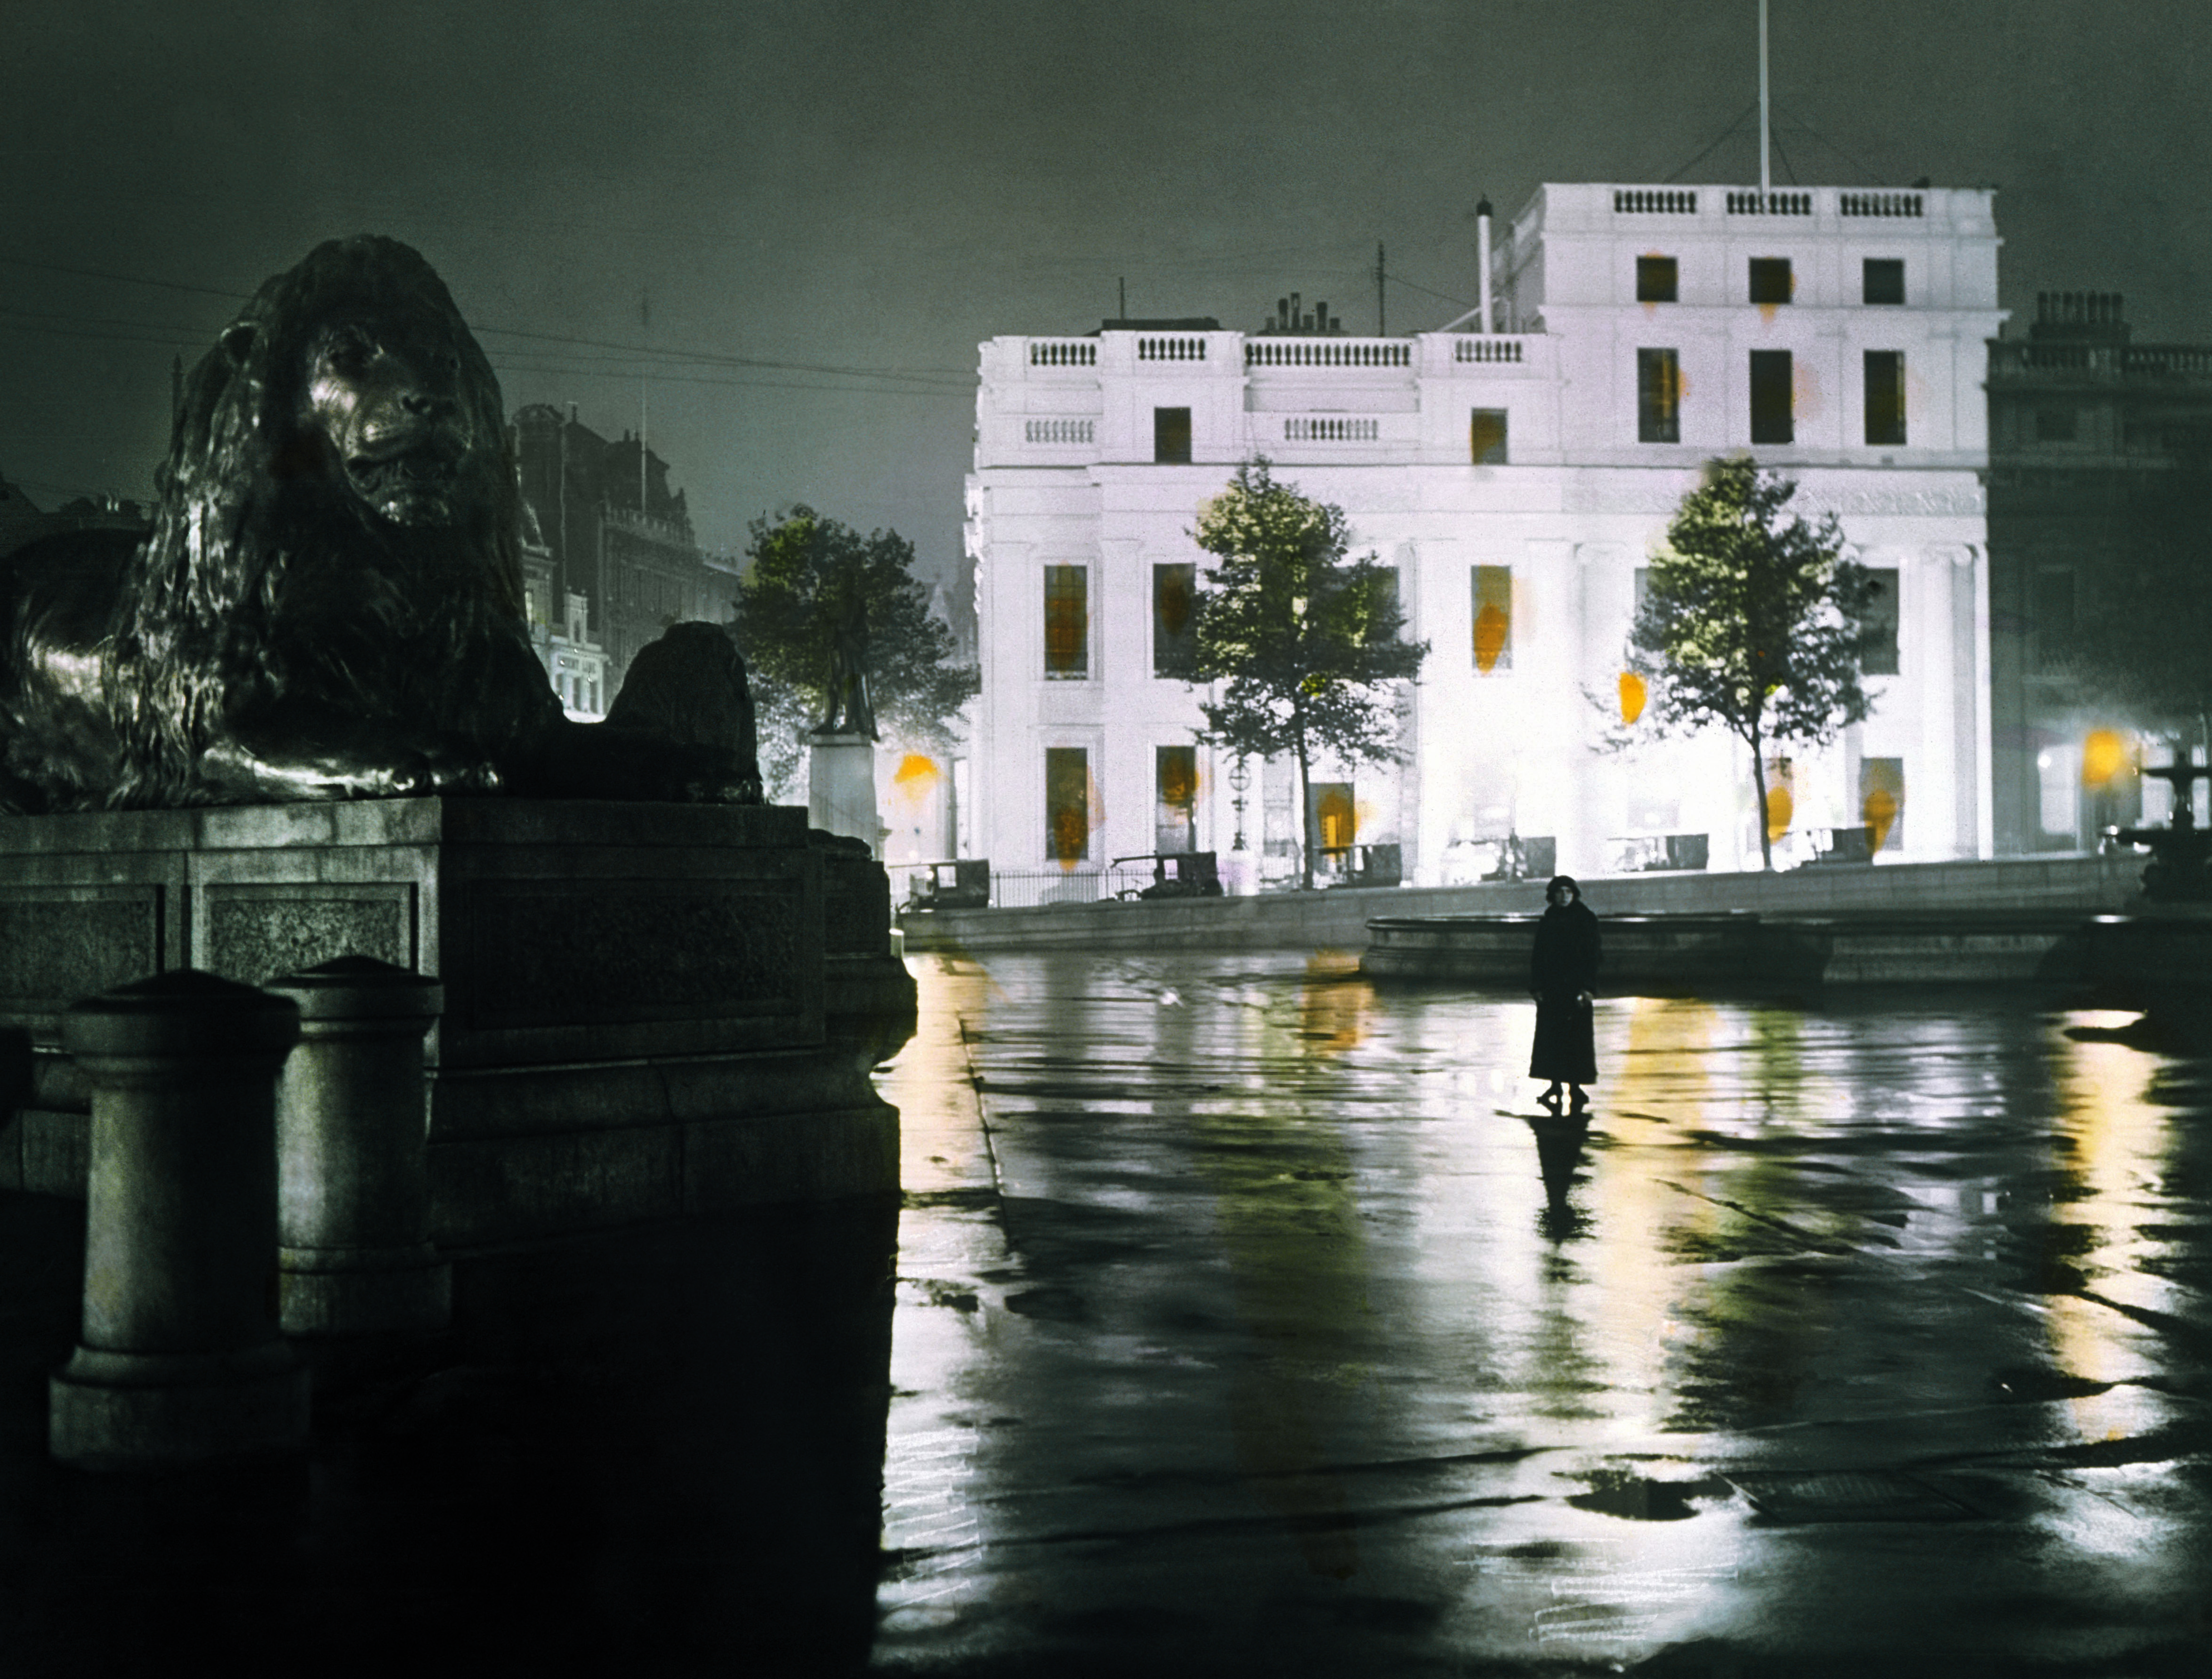 1910. A wet night in Trafalgar Square. A woman poses for a moody night-time shot. Despite the rain, a row of taxis wait on the west side of the square.